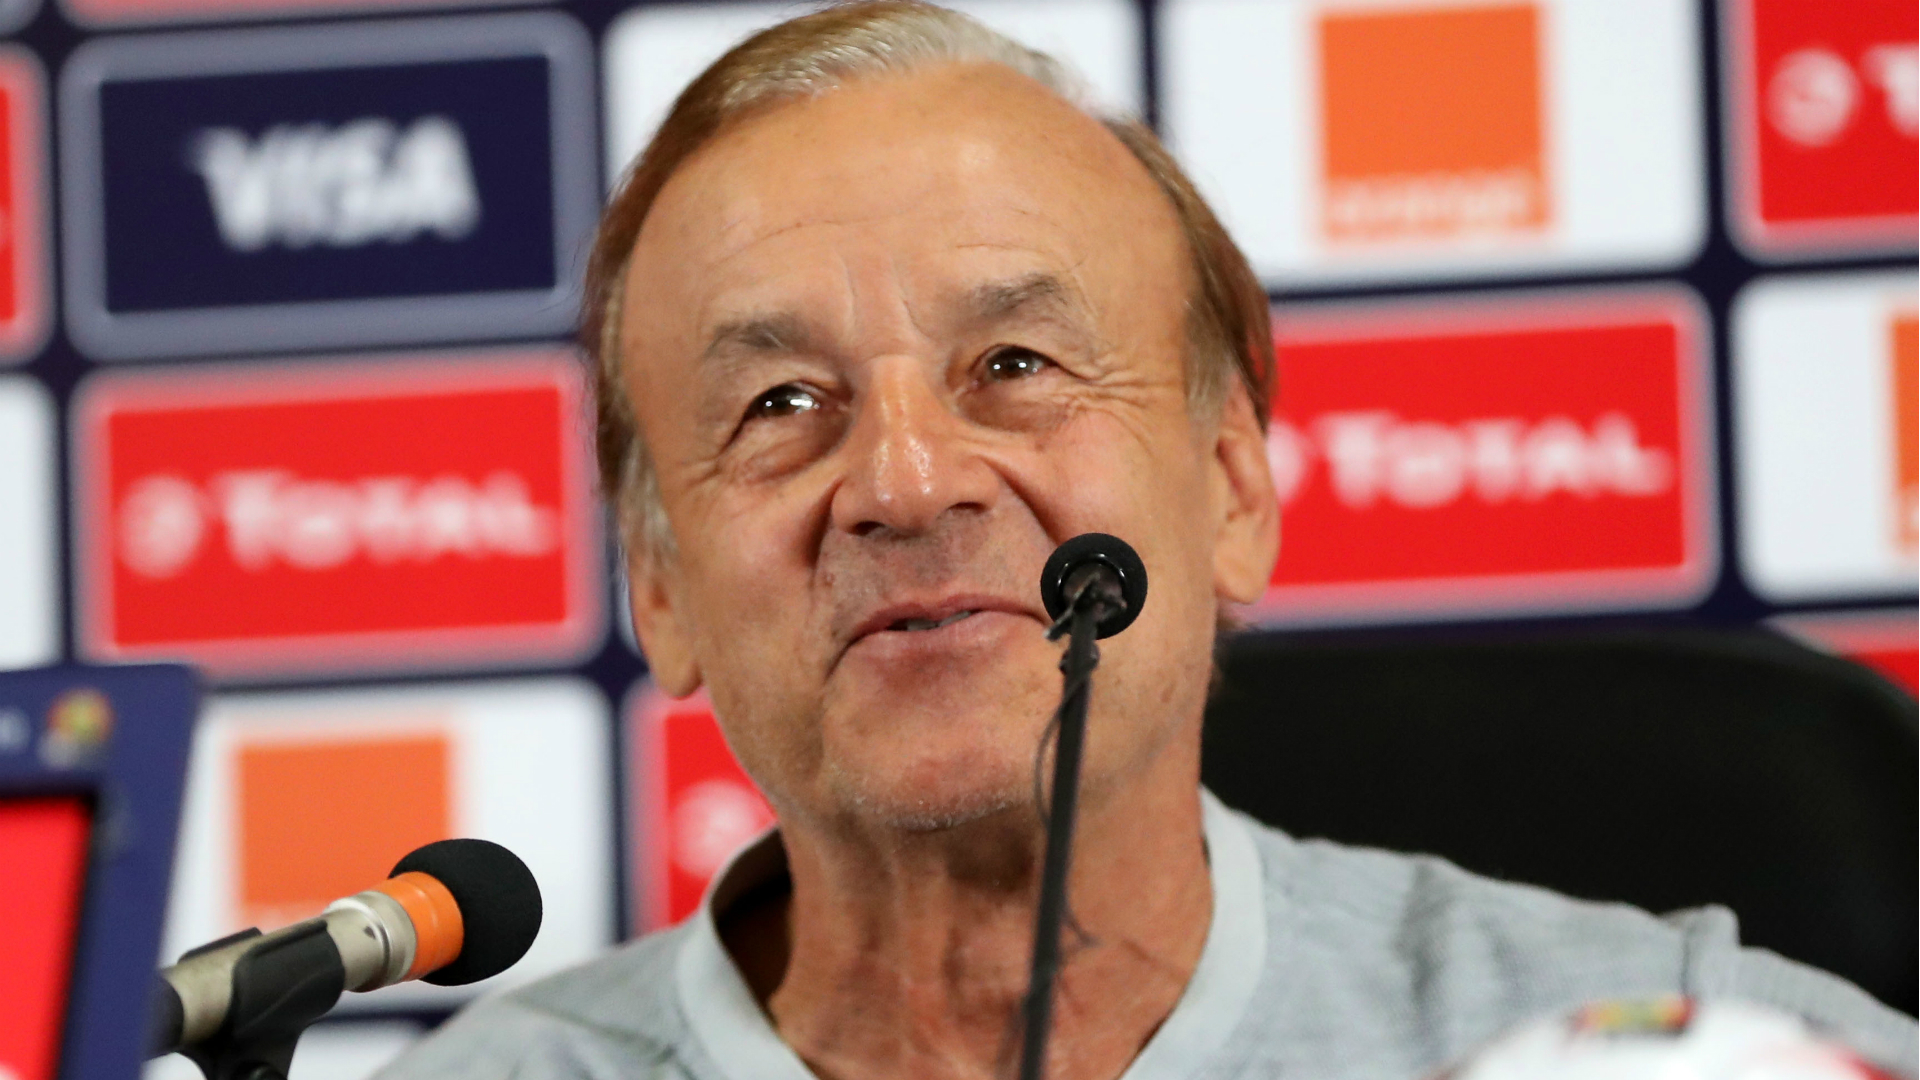 Gernot Rohr set to get new contract from NFF to remain as Super Eagles coach